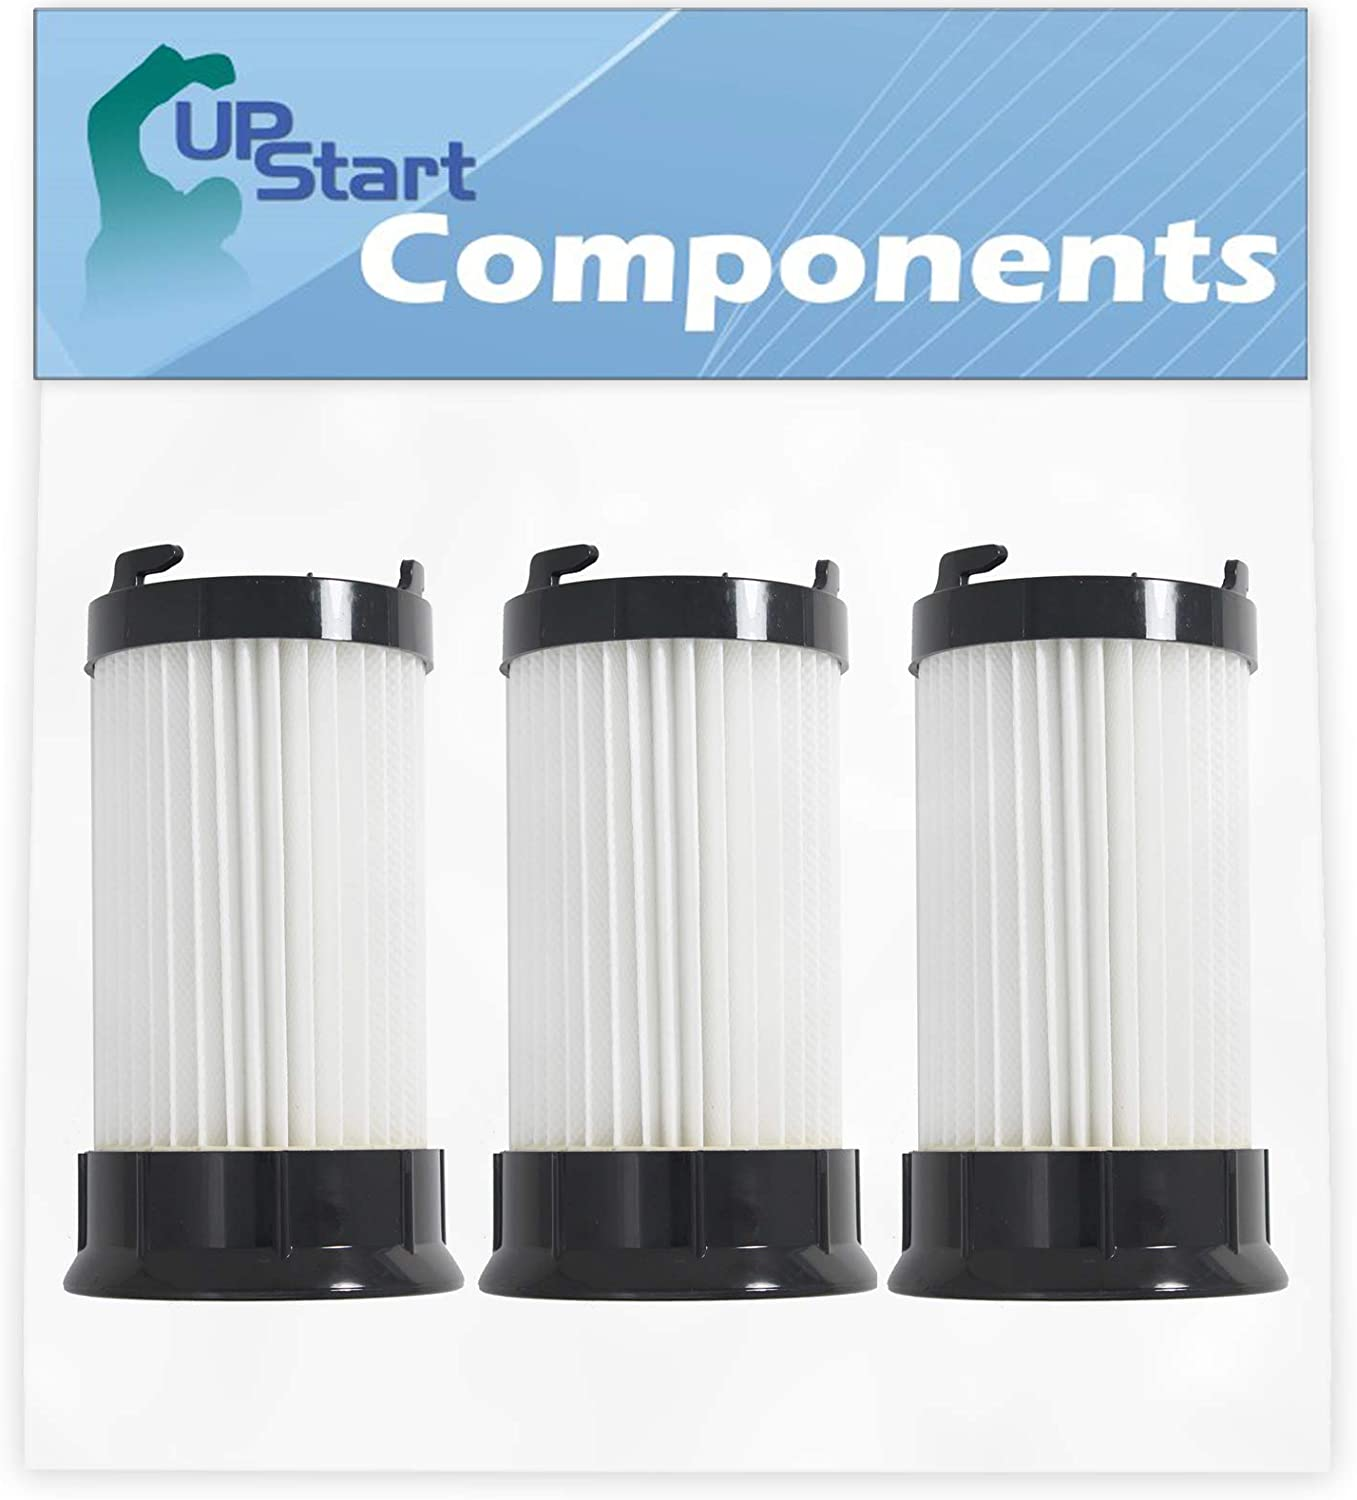 3-Pack DCF-4 DCF-18 Filter Replacement for Eureka Part Number 18505, 3690, 62132, 63073 & GE Part Number 61700, 61770, 28608-1 Vacuum Cleaner - Compatible with Eureka DCF-4 DCF-18 HEPA Dust Cup Filter